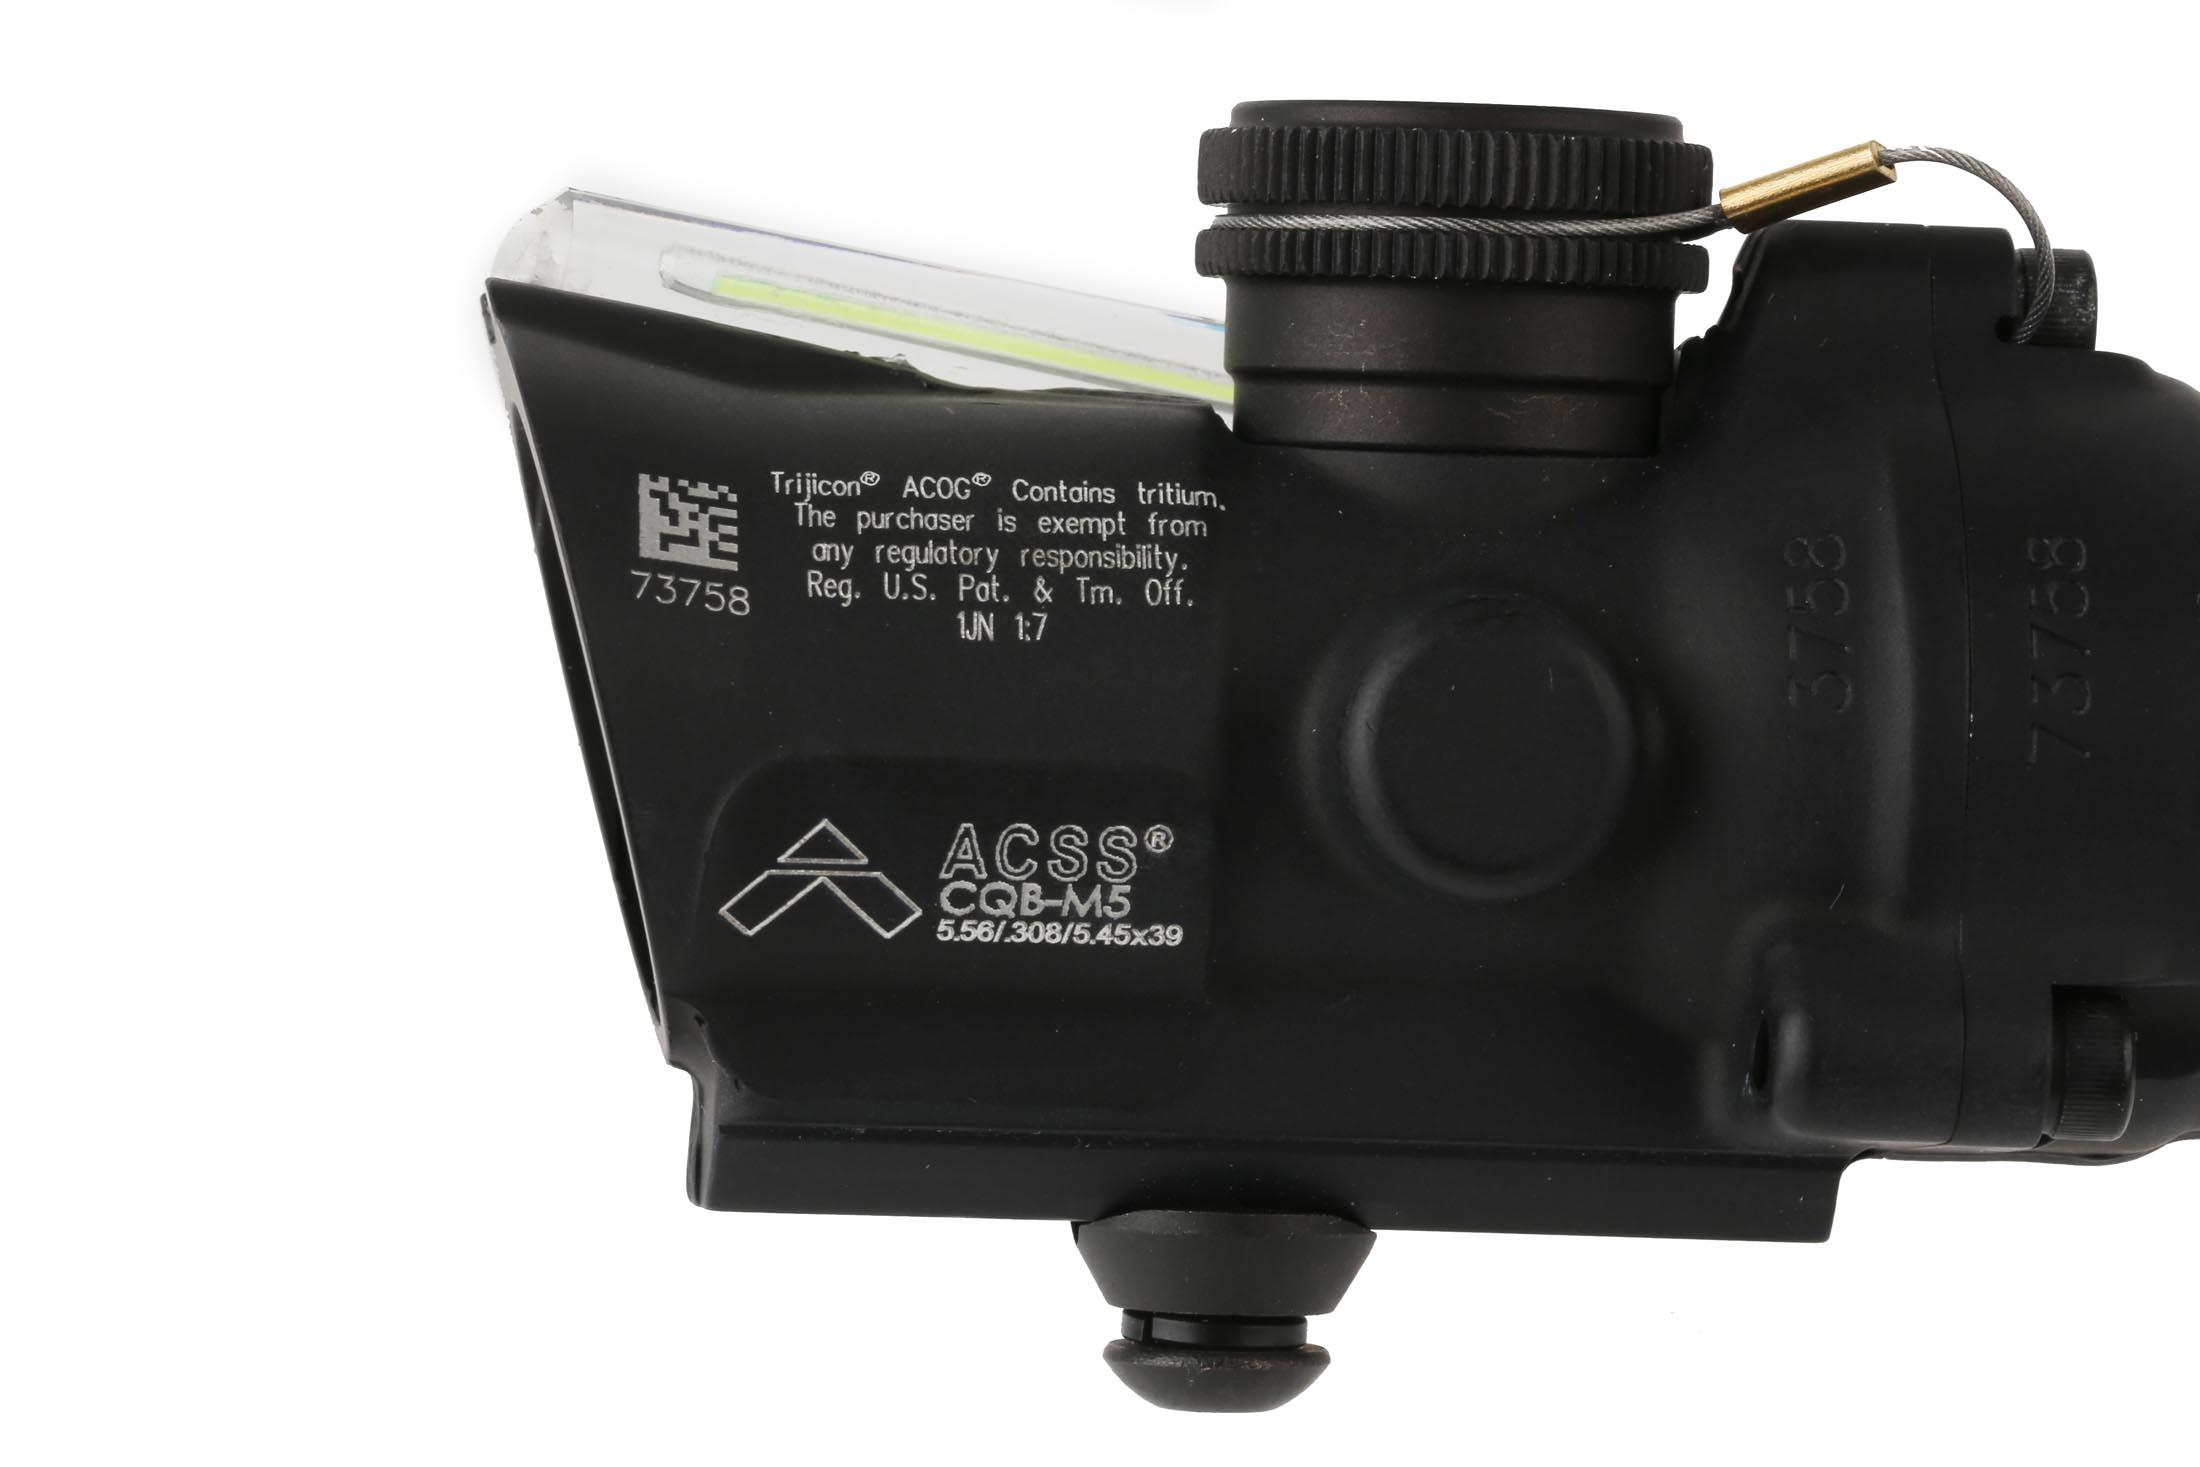 Trijicon ACOG compact 1.5X16S green compact rifle scope has a tall base and the ACSS CQB-M5 reticle has a 16mm objective